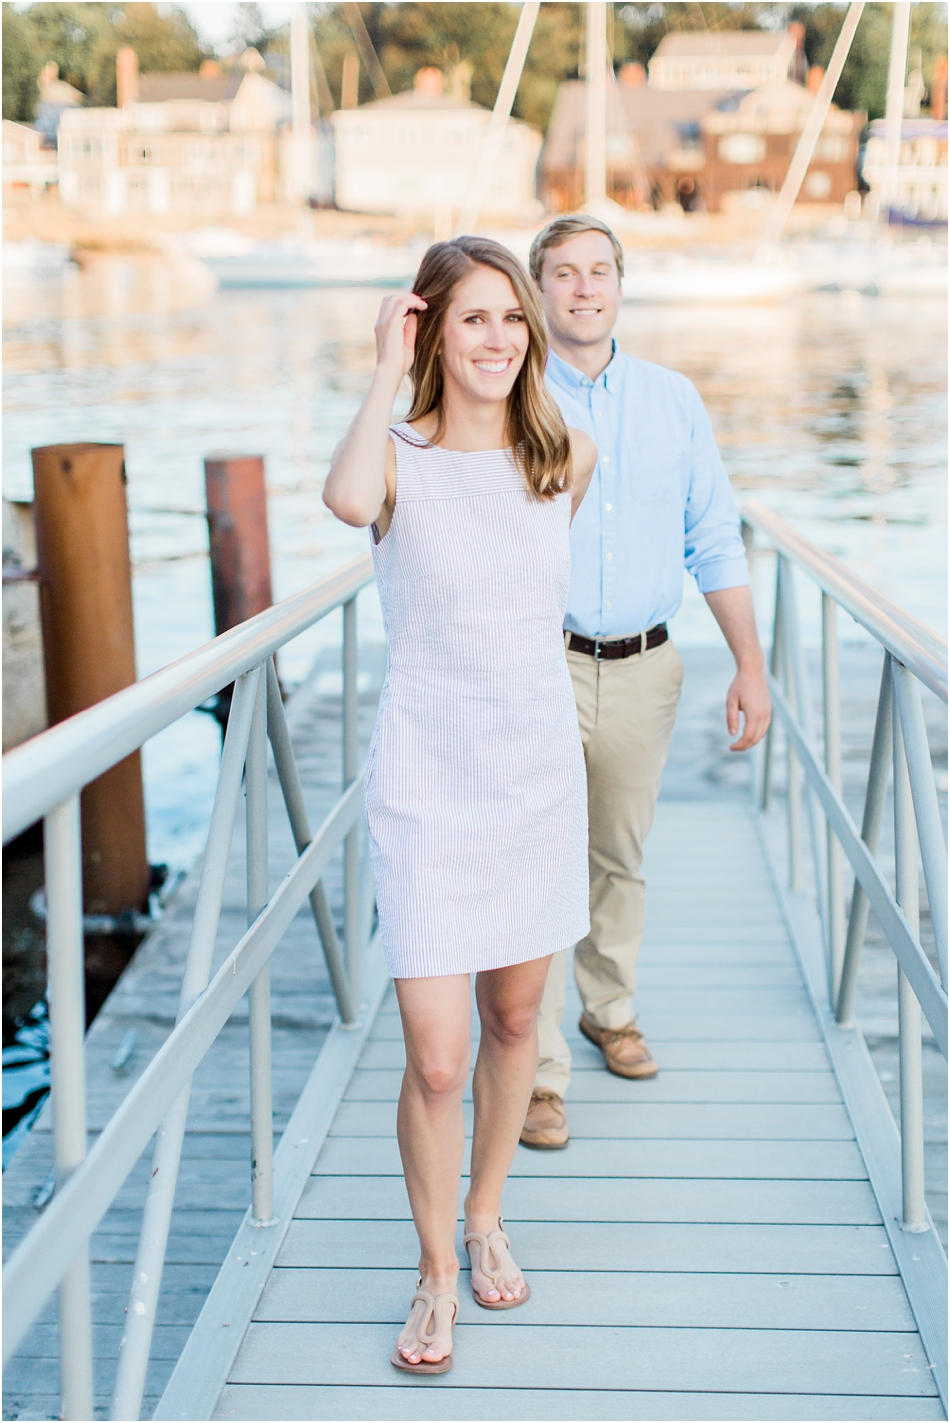 rockport_ma_engagement_kelly_zach_cape_cod_boston_new_england_wedding_photographer_Meredith_Jane_Photography_photo_2327.jpg